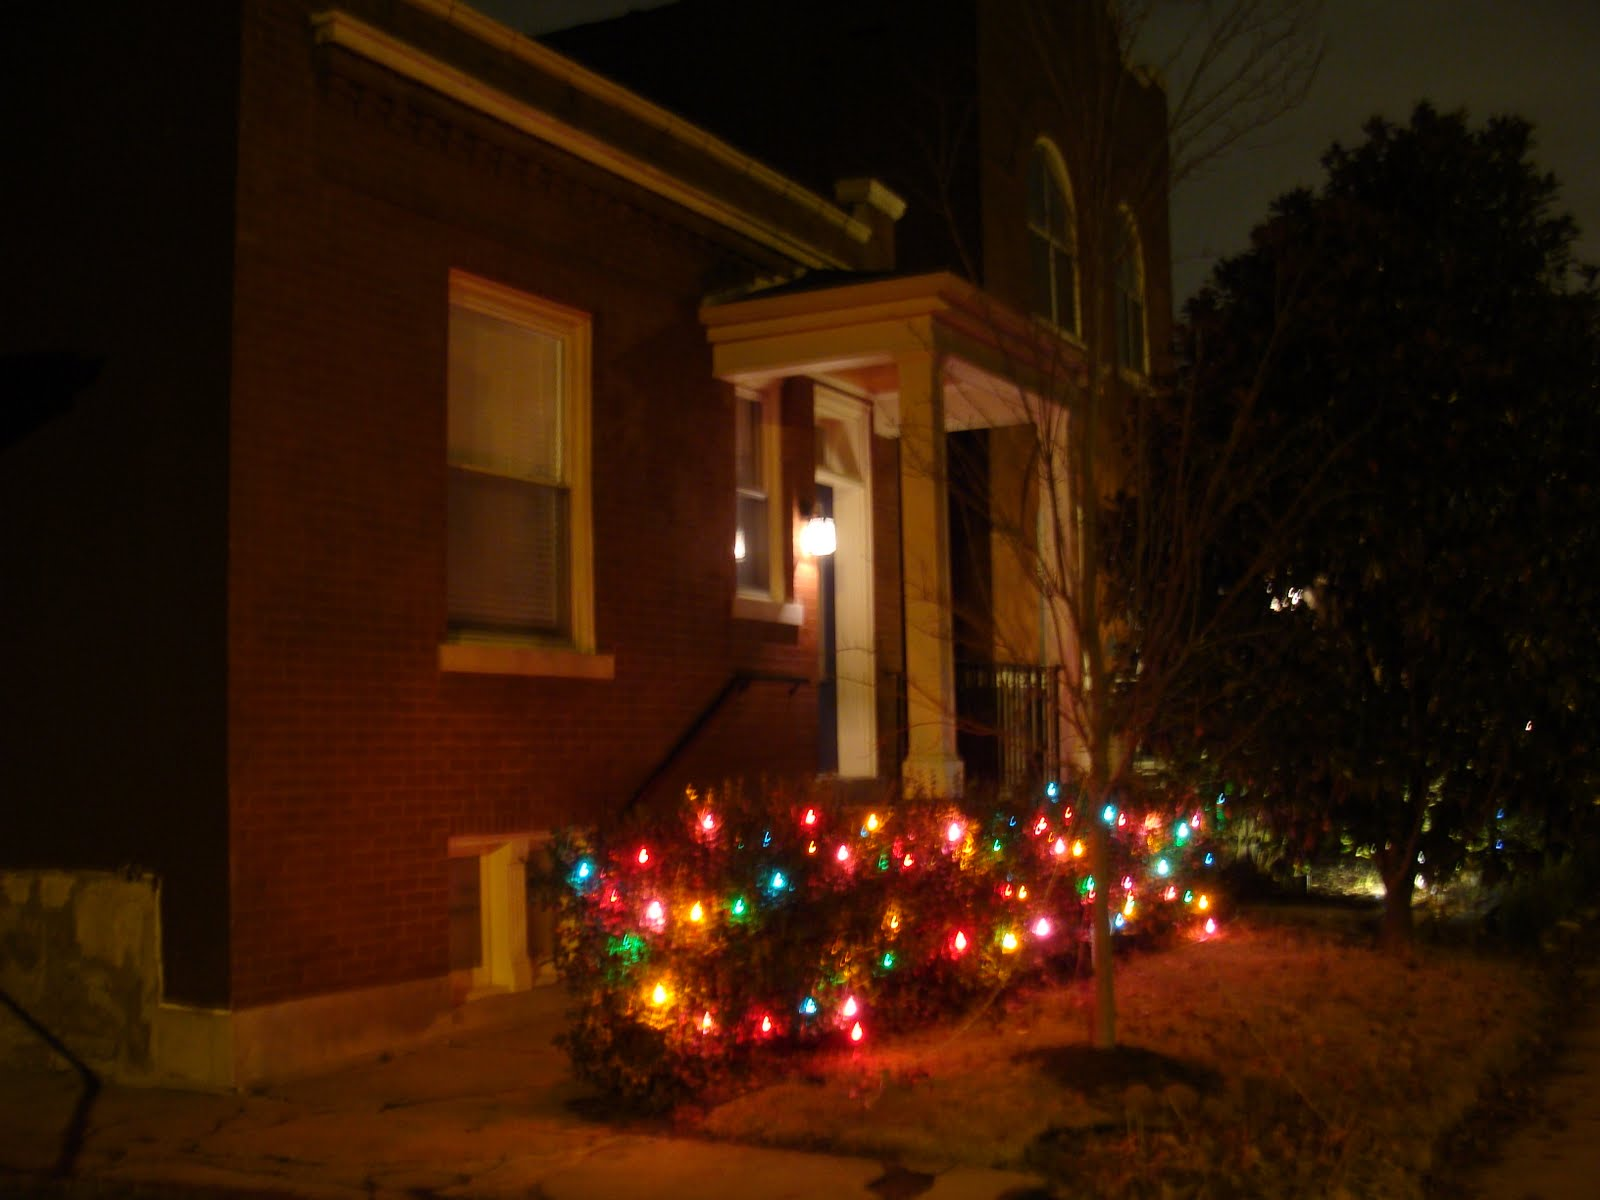 merry christmas from saint louis patina st louis patina